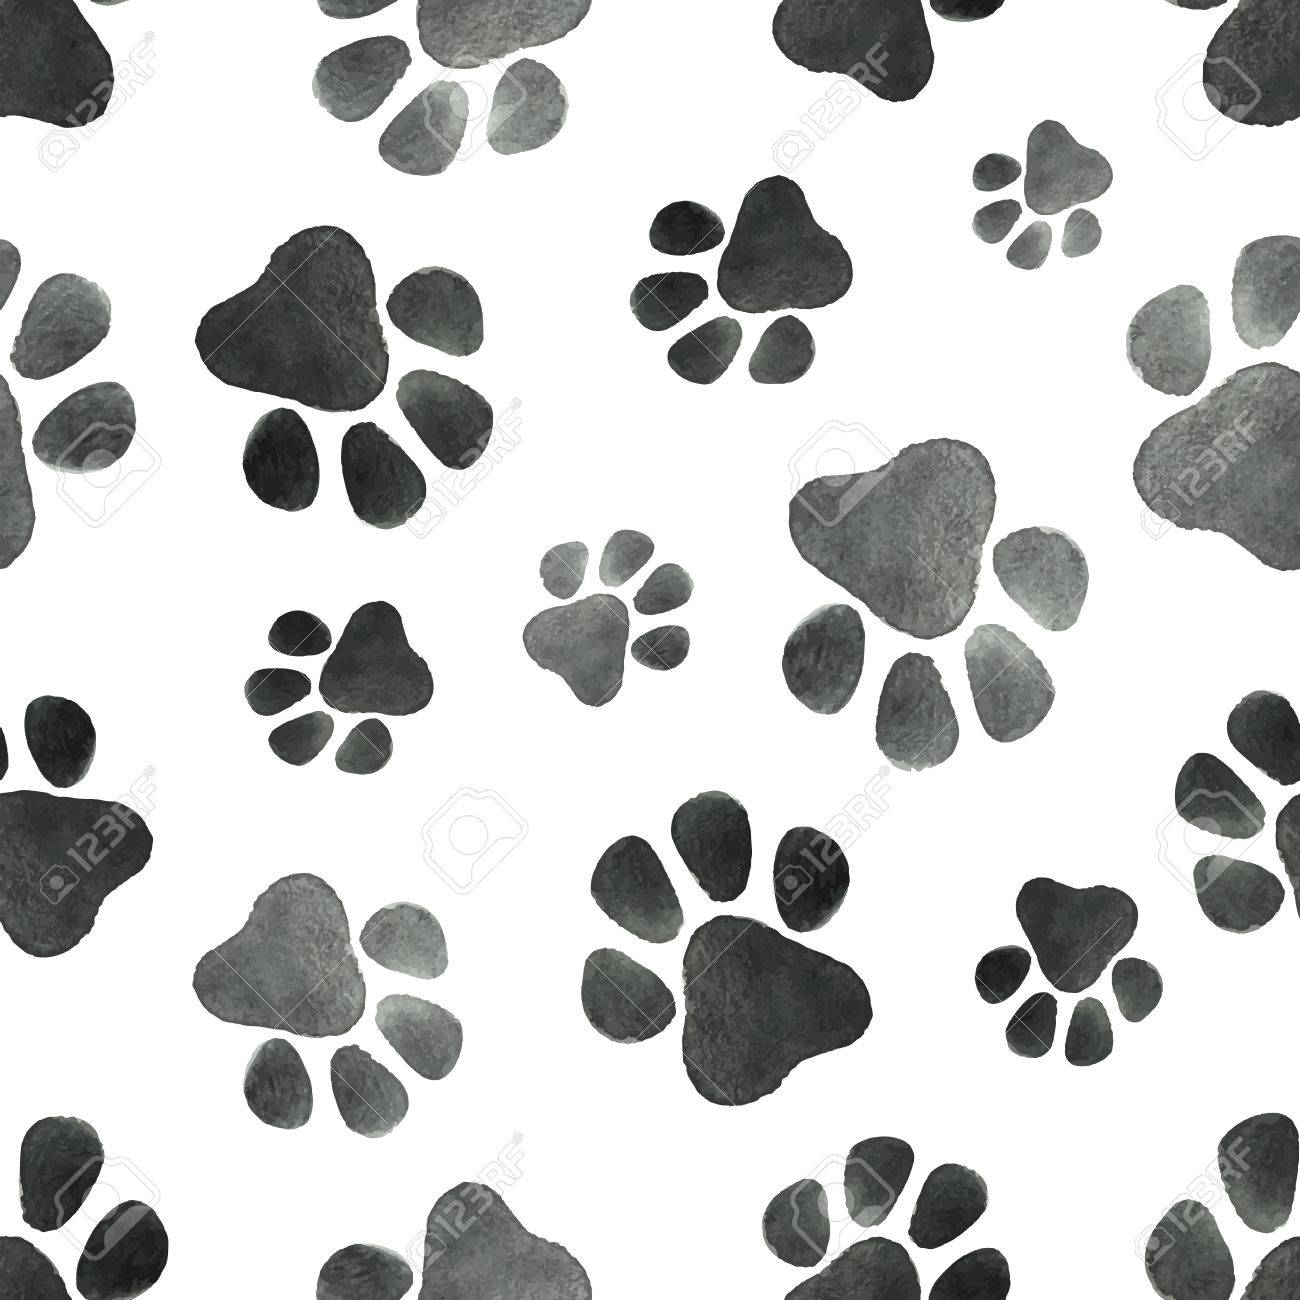 Watercolor Vector Seamless Pattern With The Imprint Of Dog Paws. Stock  Photo, Picture And Royalty Free Image. Image 87236539.